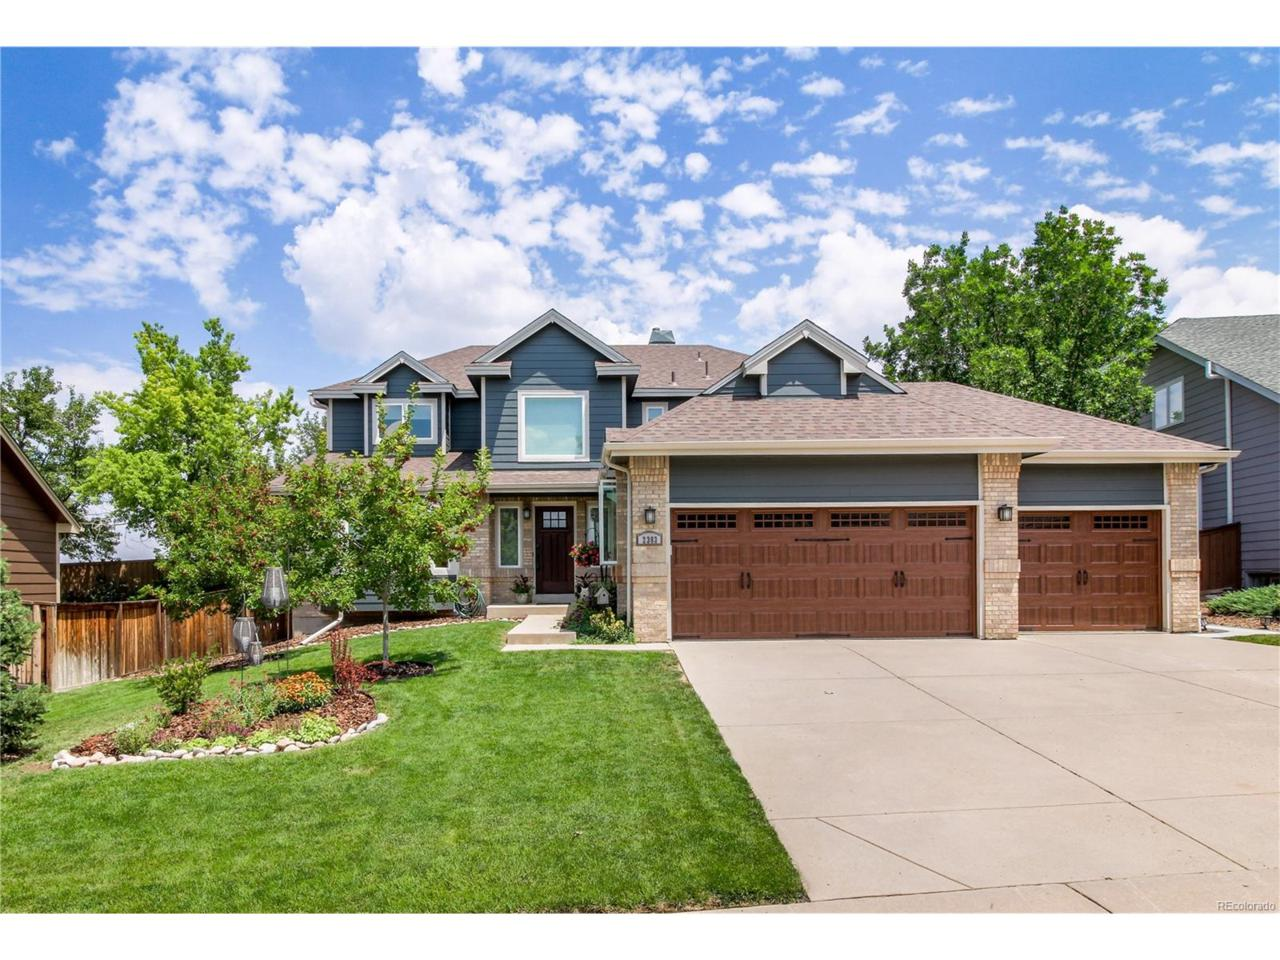 2383 Wigan Court, Highlands Ranch, CO 80126 (MLS #3401370) :: 8z Real Estate